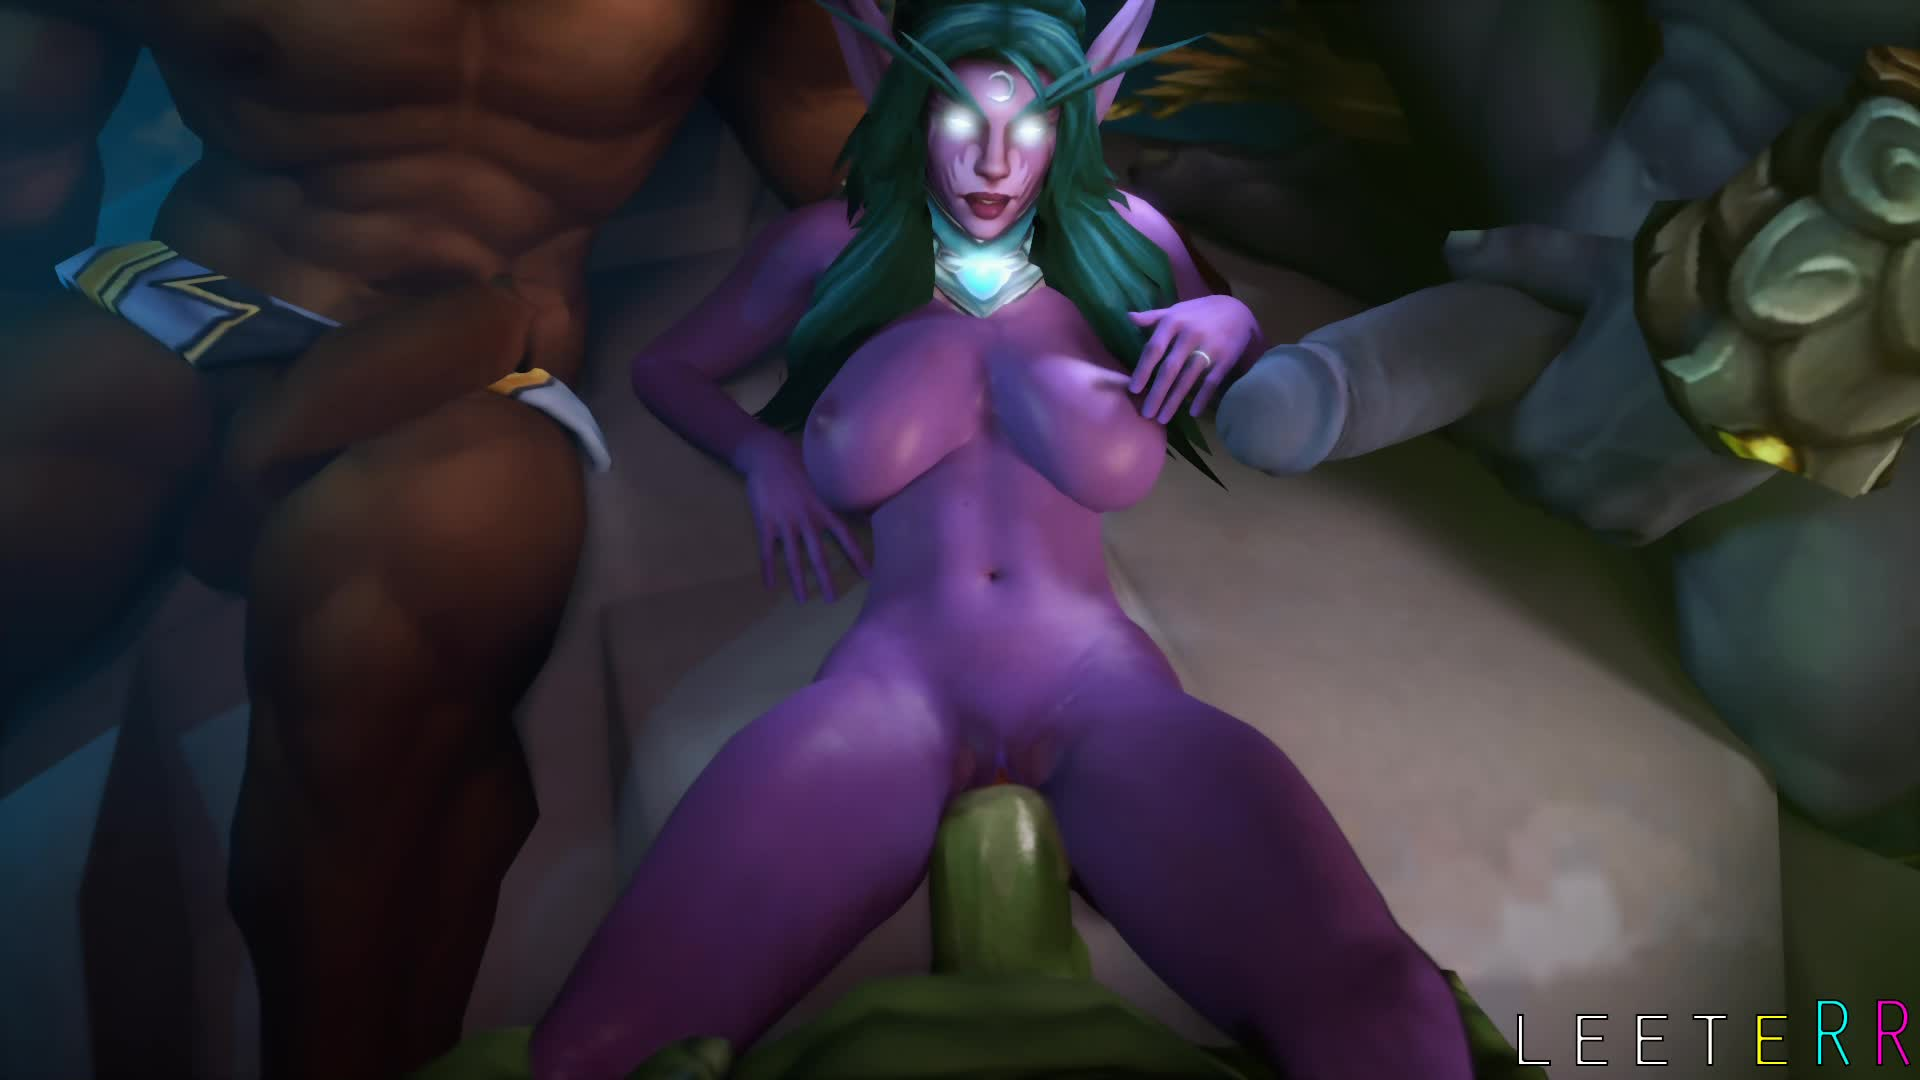 Xvideo porno world of warcraft hardcore download